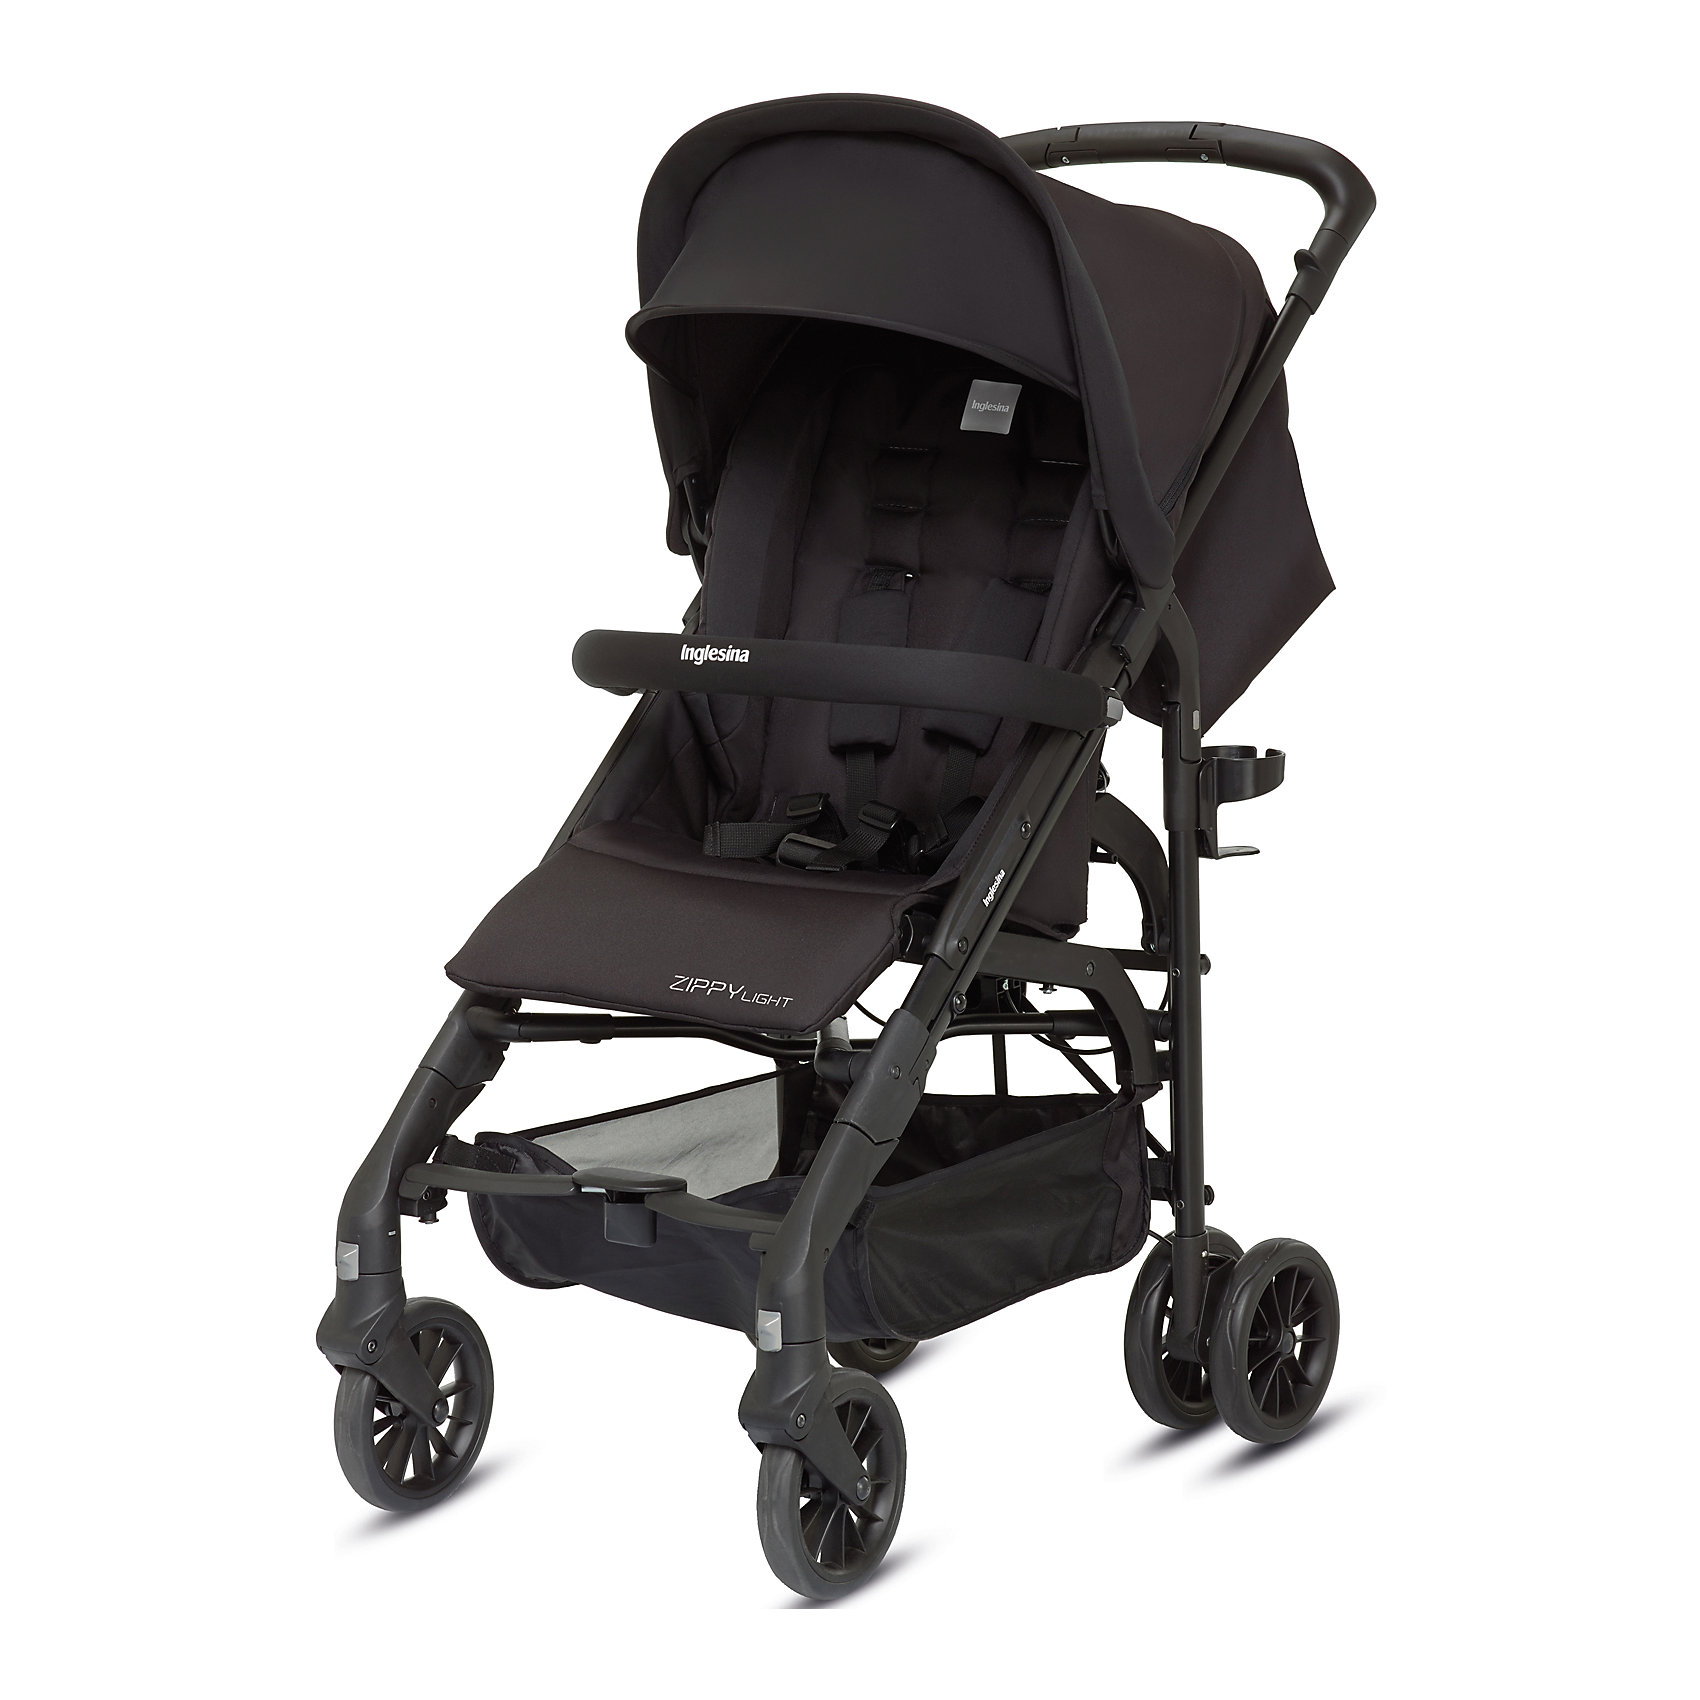 Inglesina Прогулочная коляска Zippy Light, Inglesina, Total Black прогулочная коляска cool baby kdd 6699gb t fuchsia light grey